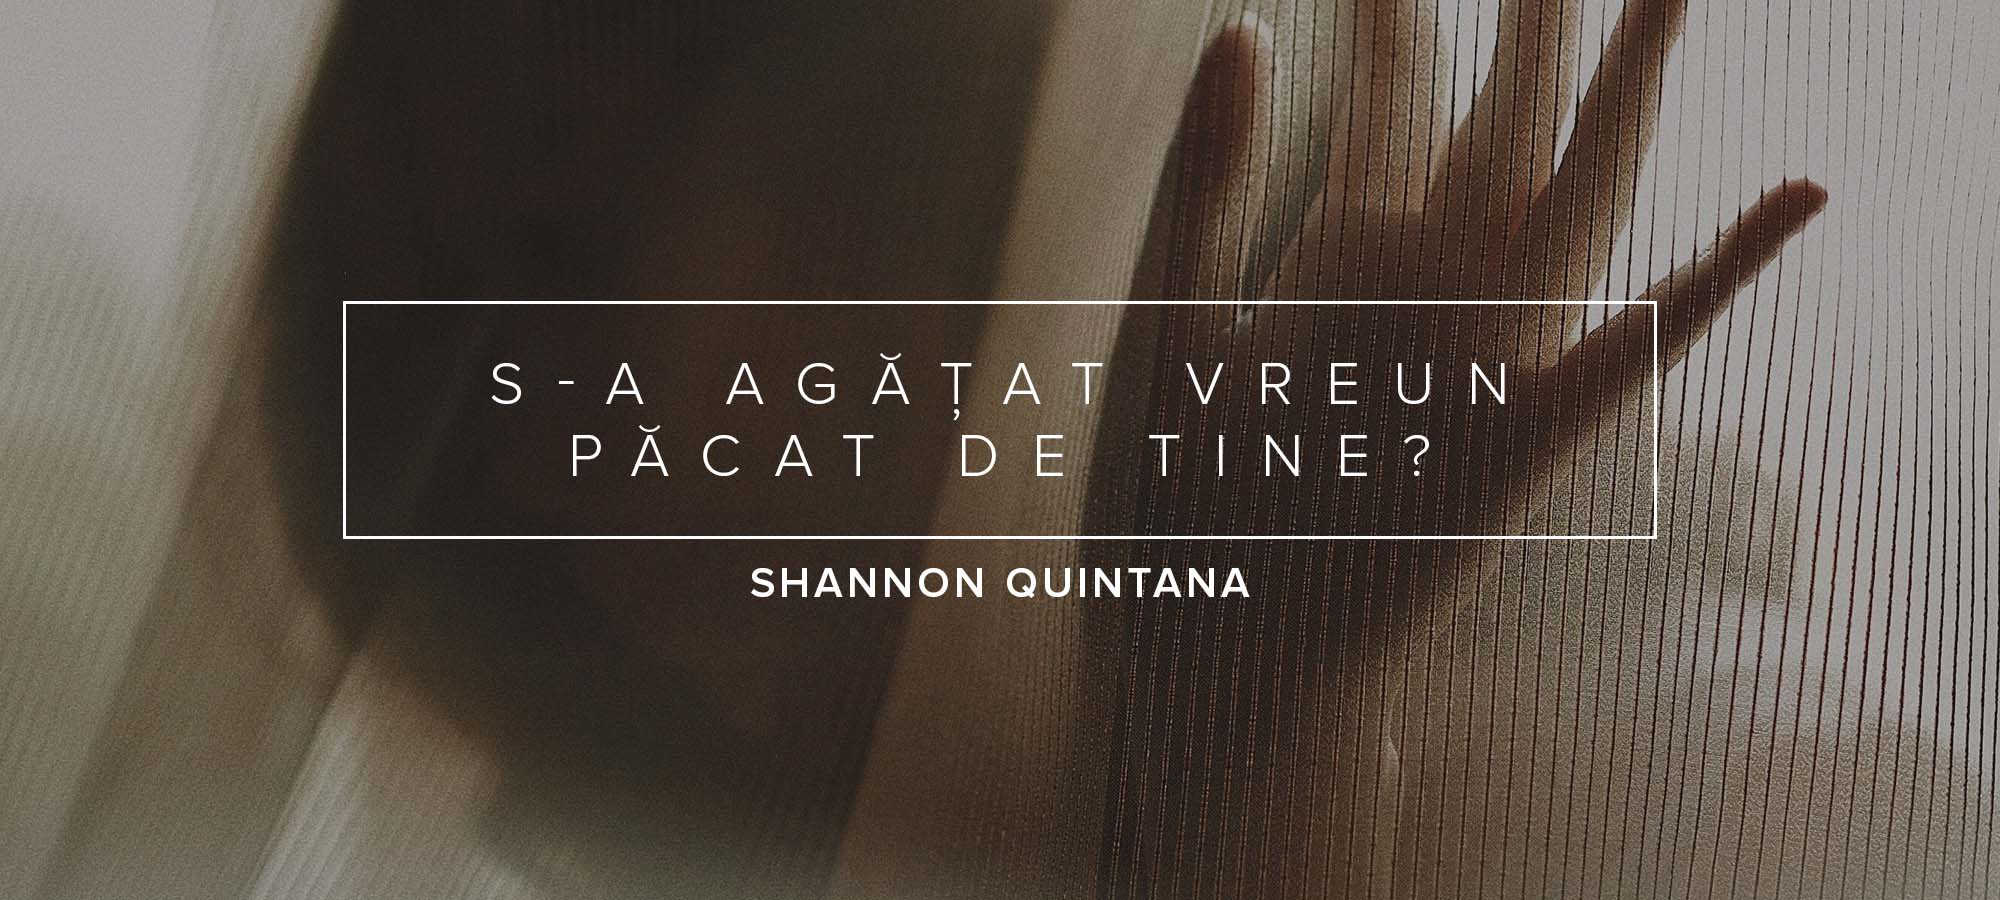 Shannon Quintana Has a Piece of Sin Latched Onto You